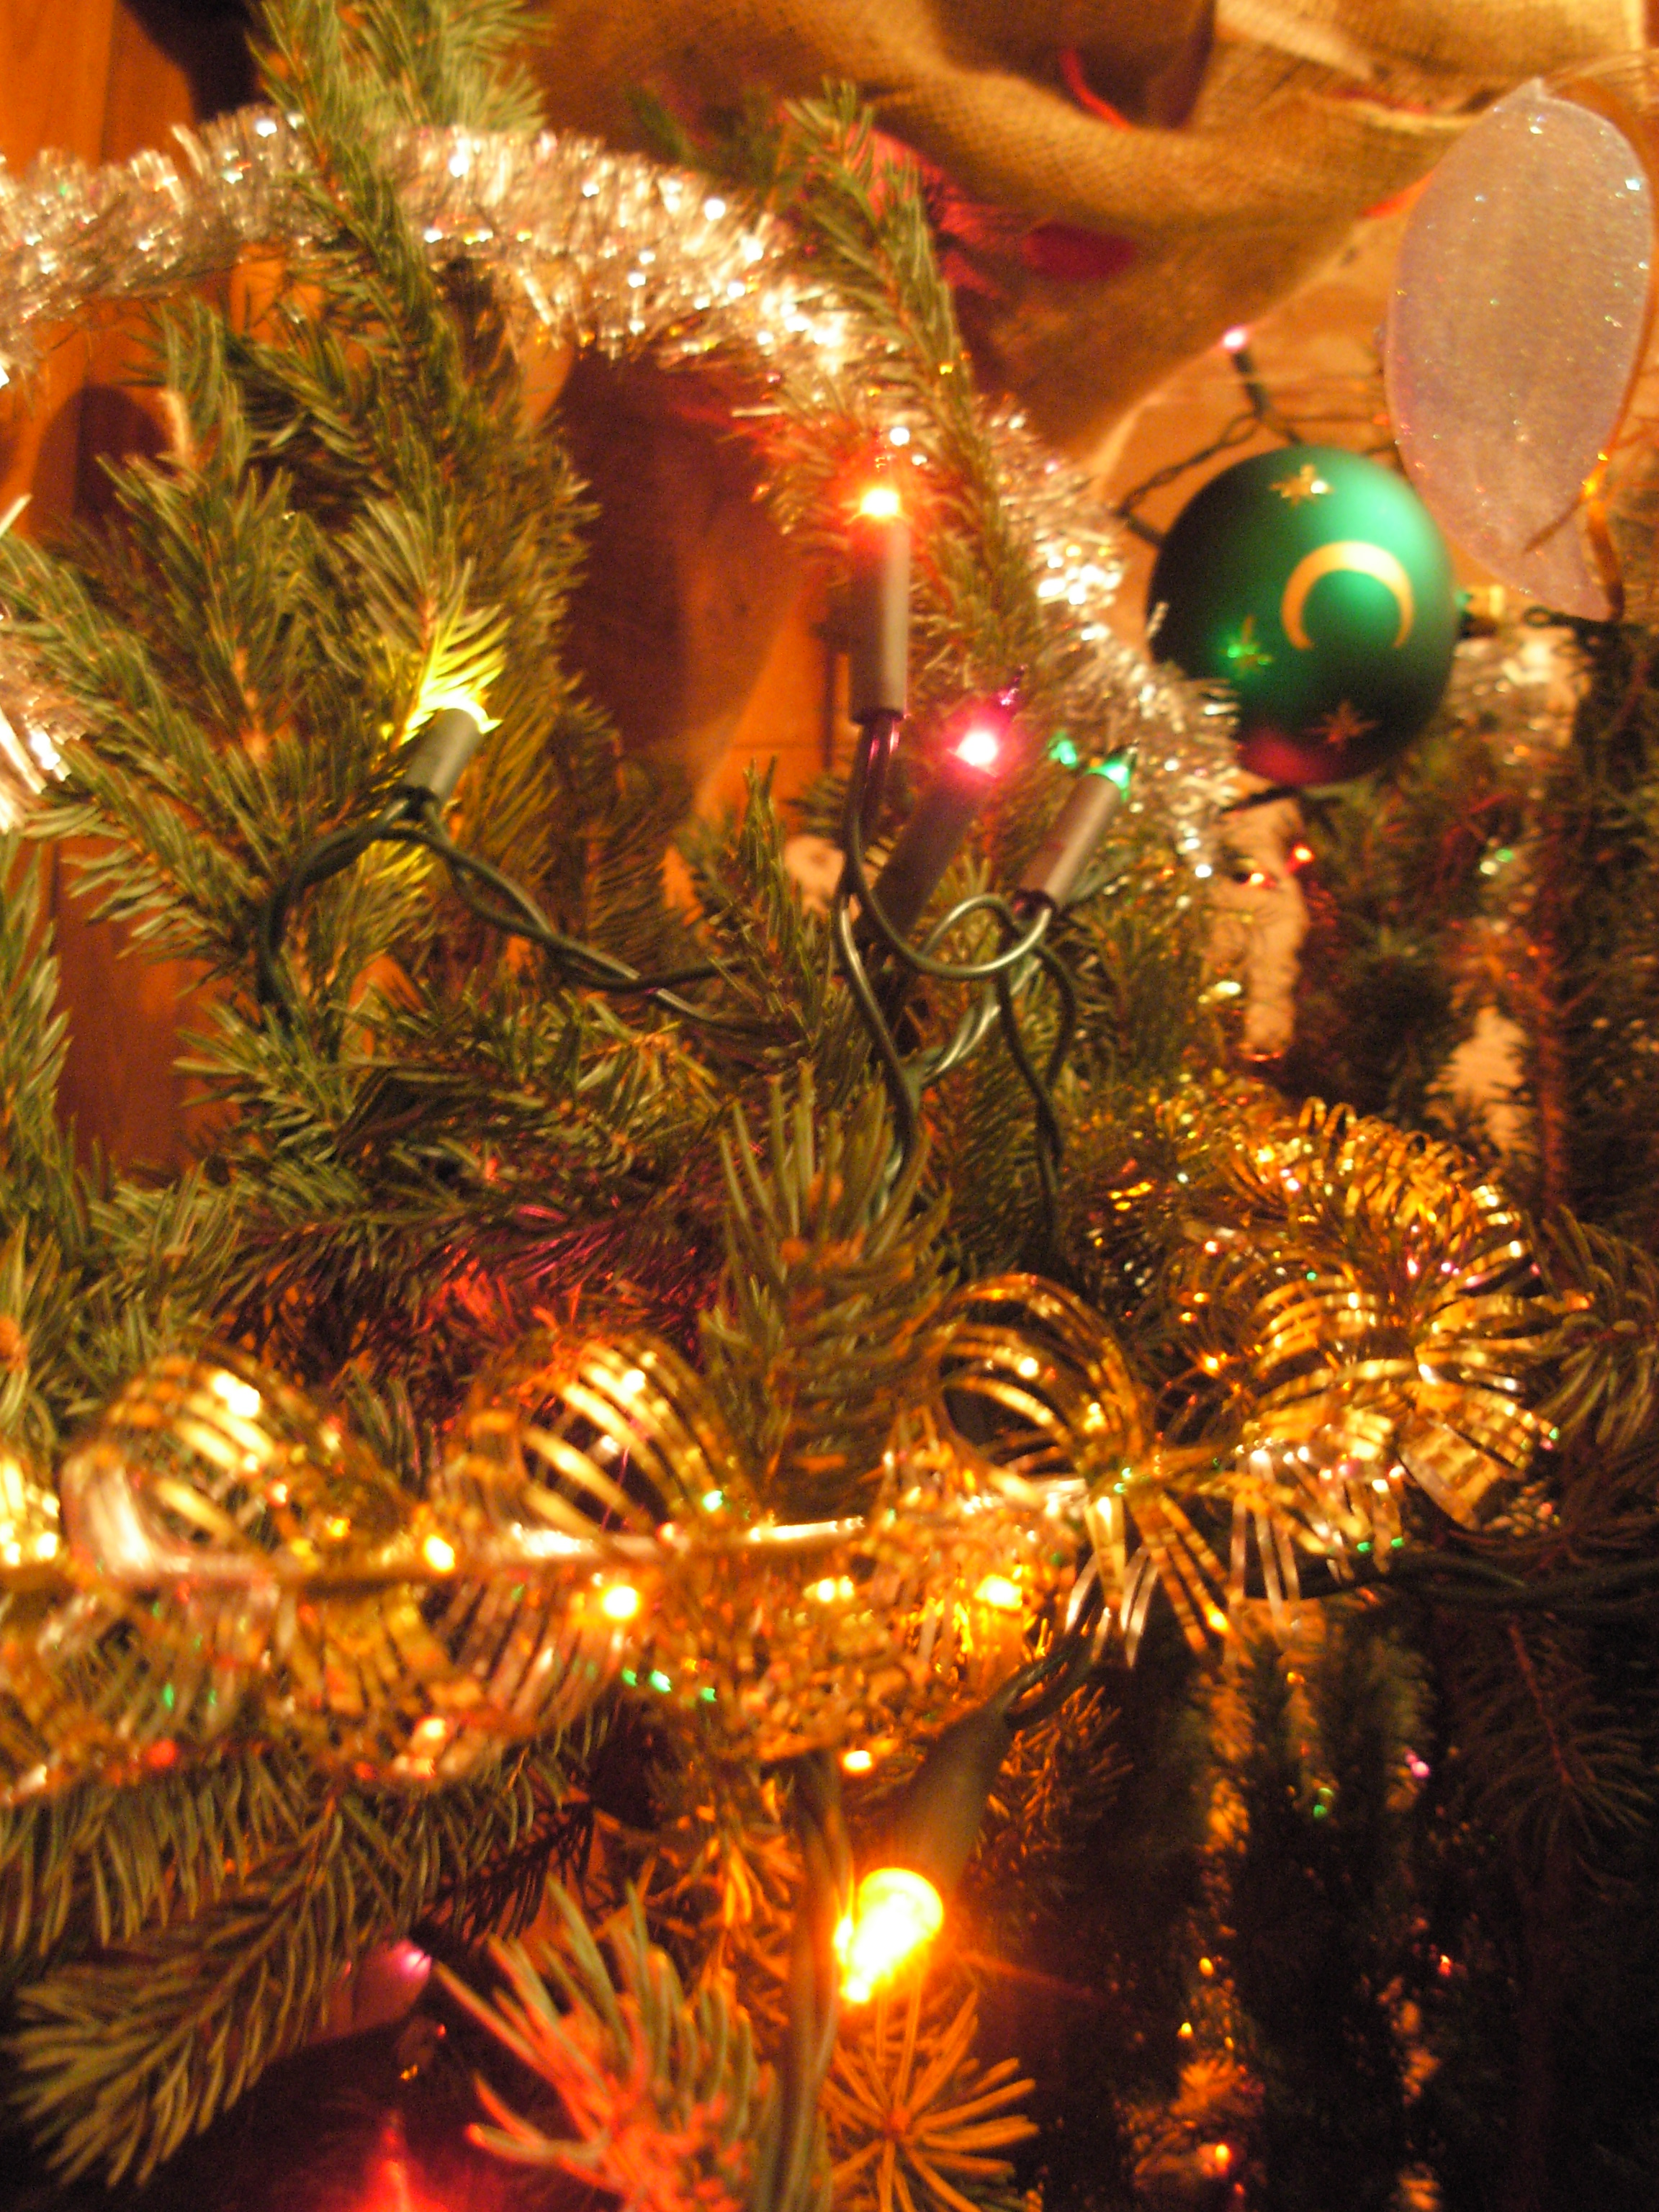 filechristmas decorations on a tree closeupjpg